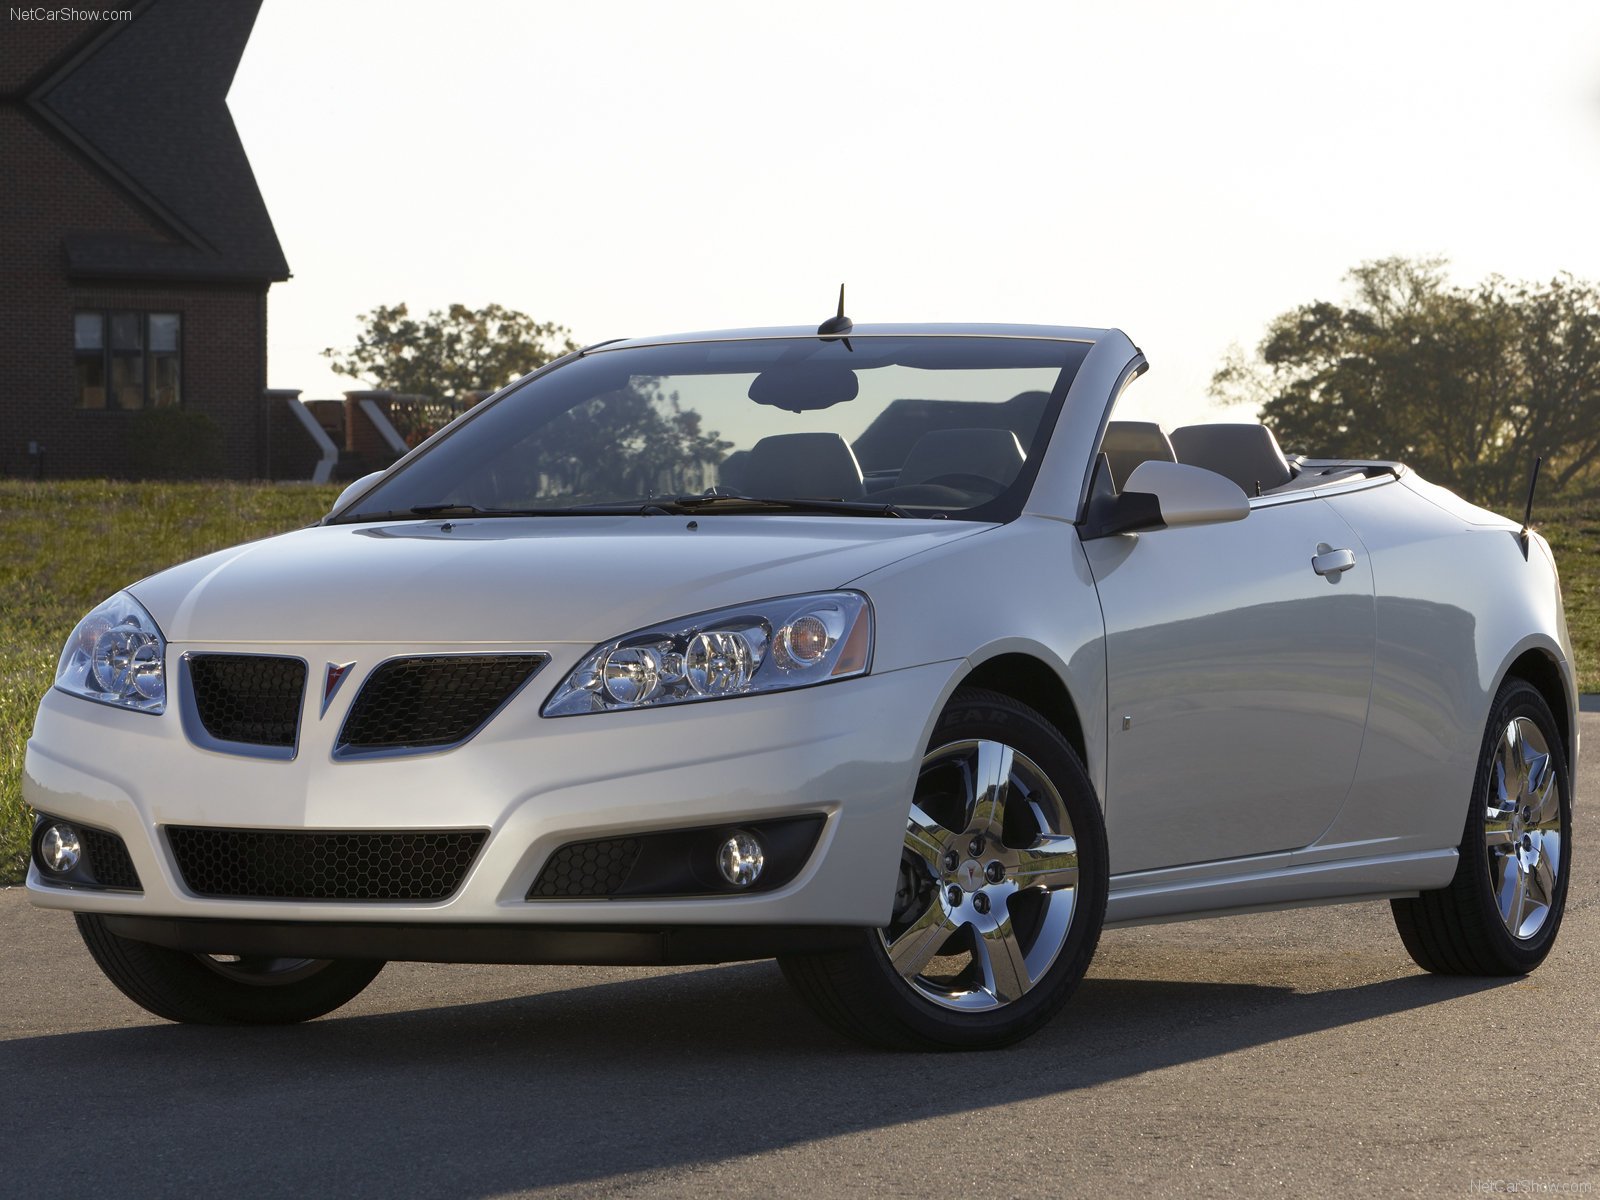 Pontiac G6 GTP Convertible photo 59712